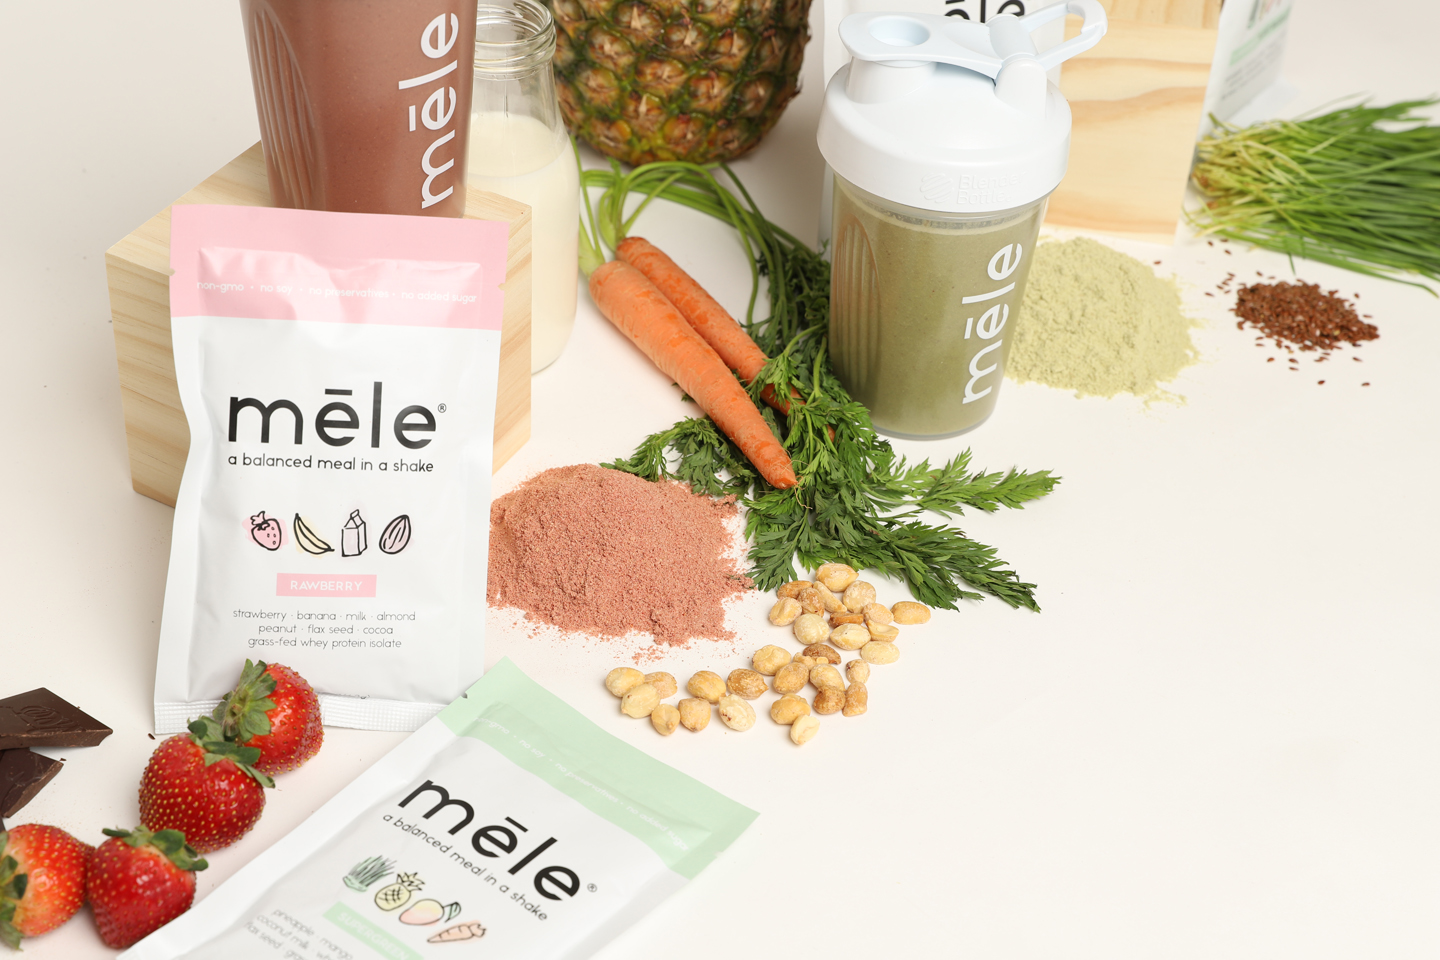 Mele shakes are delicious and healthy superfood shakes. Discover them and other natural food brands on The Online Farmers Market.